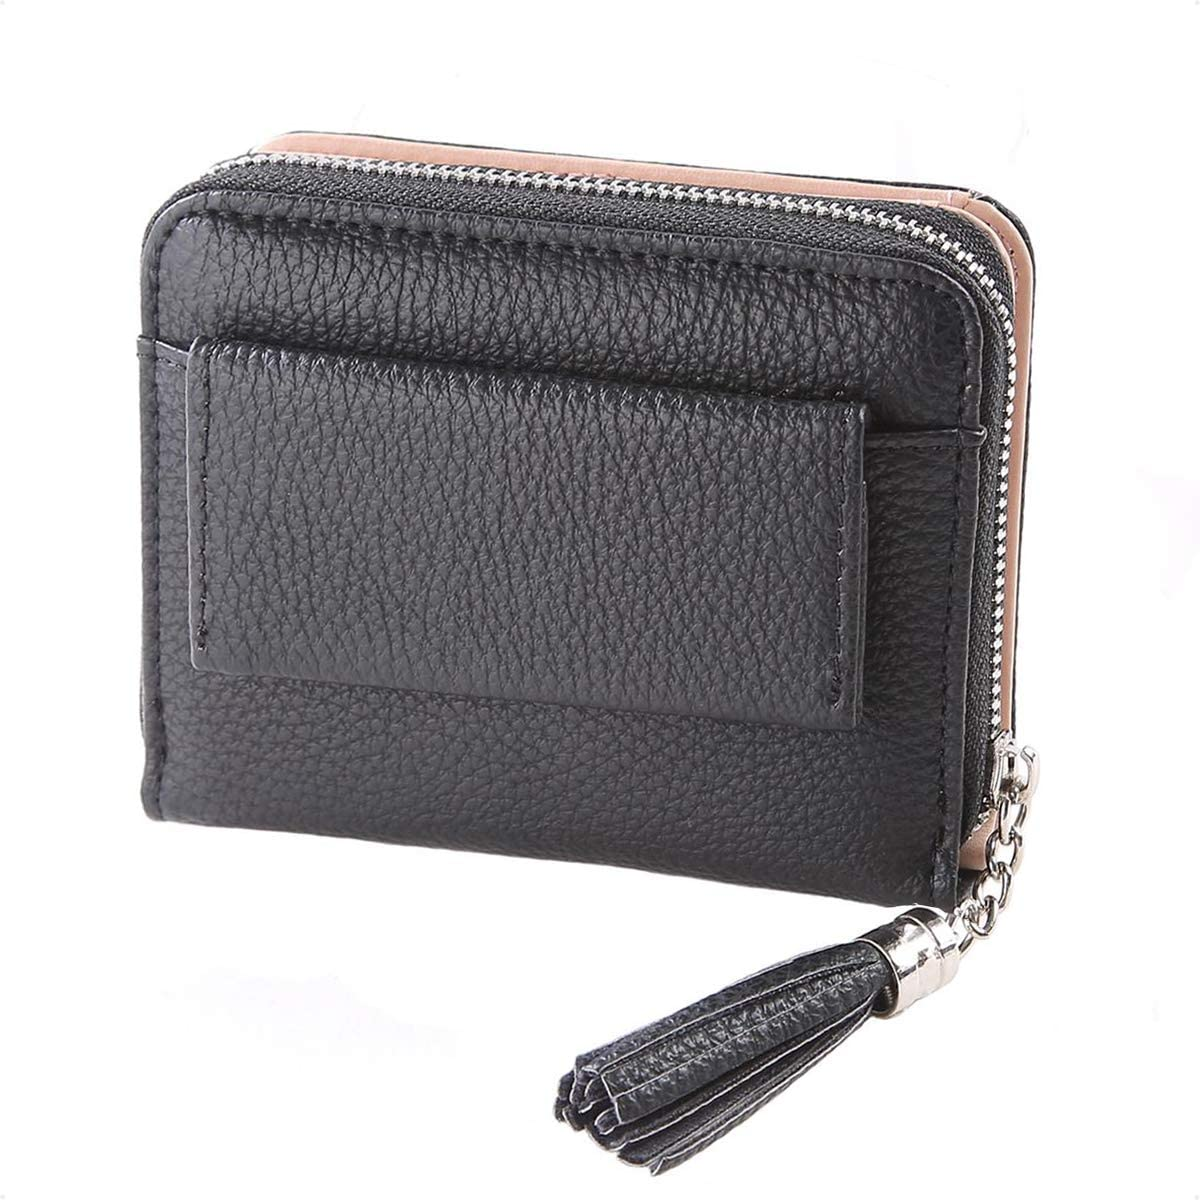 Women Small Wallet Lady Mini Purse Bifold Leather Short Wallet Rfid Blocking With Id Window A Black At Amazon Women S Clothing Store